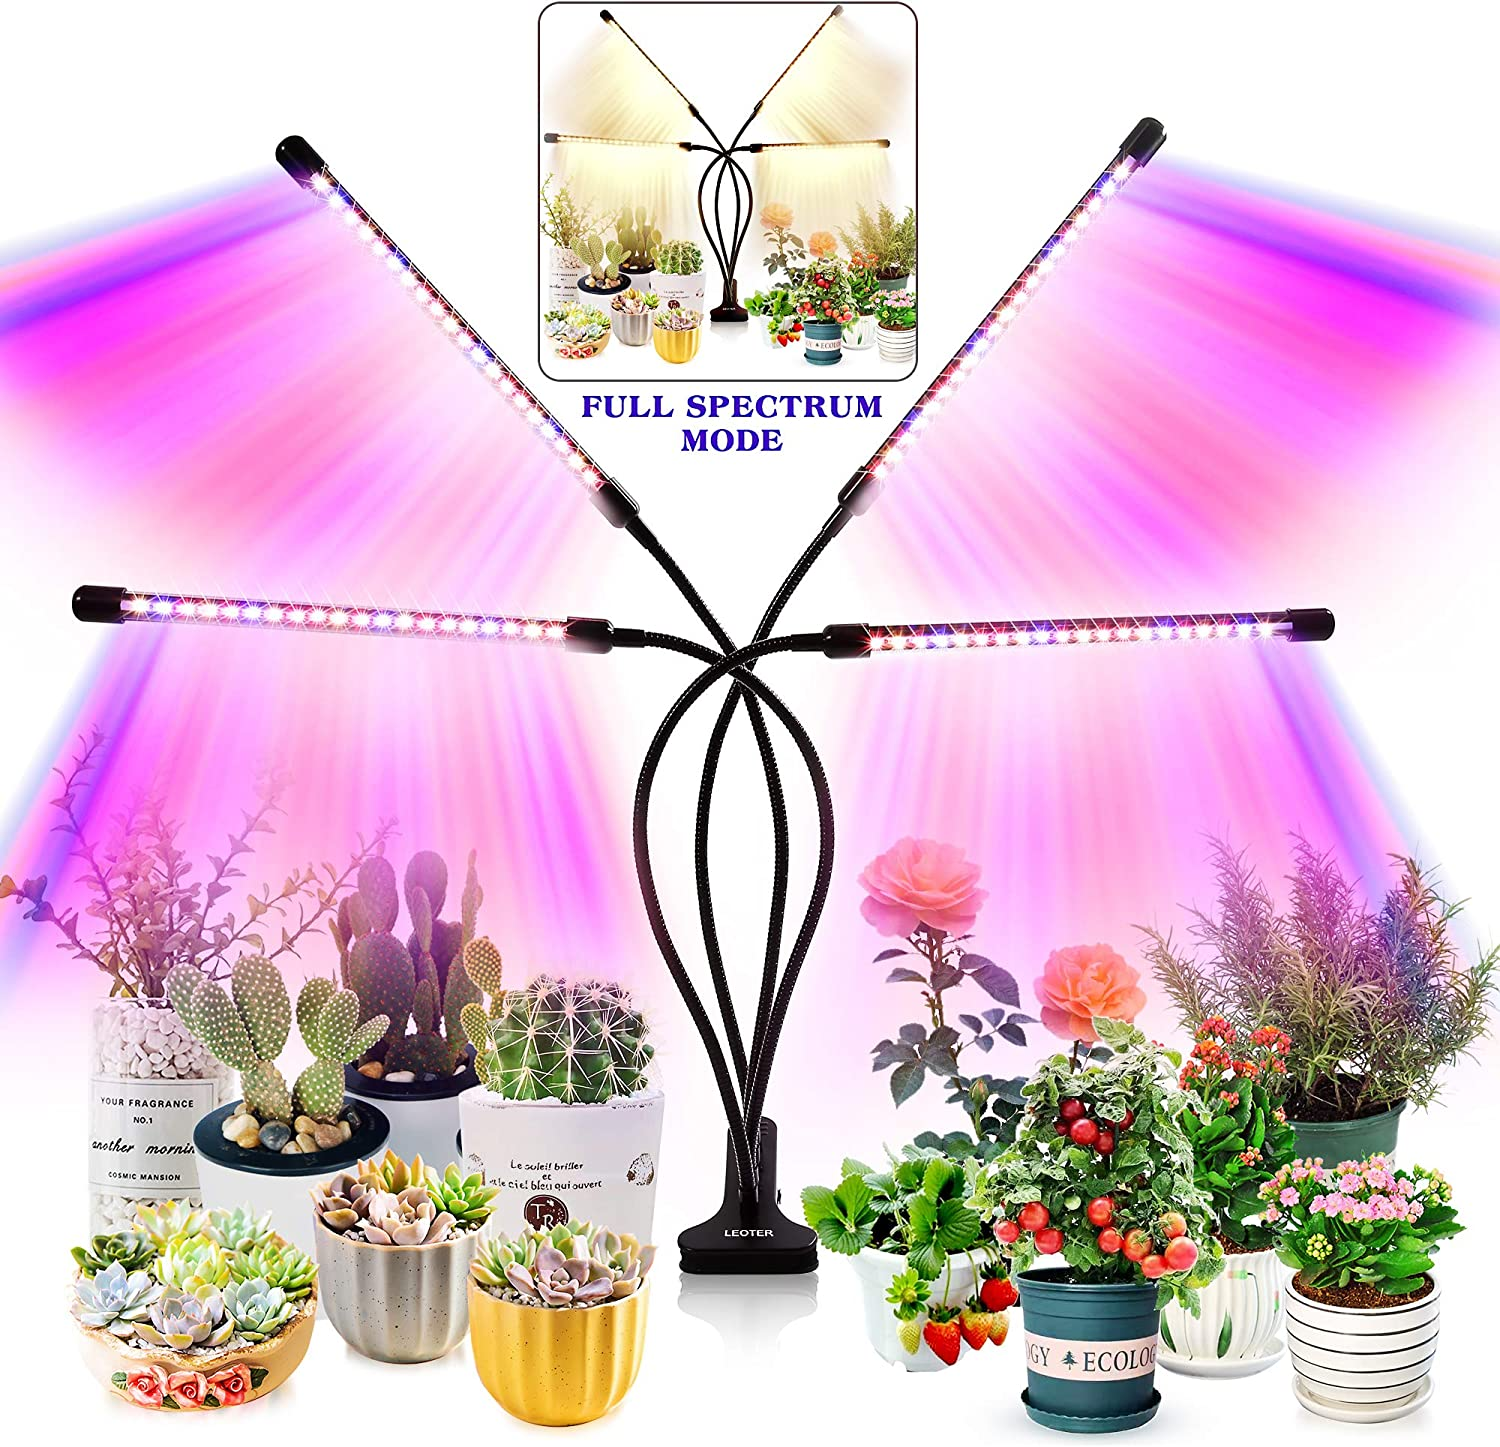 LEOTER Grow Light for Indoor Plants